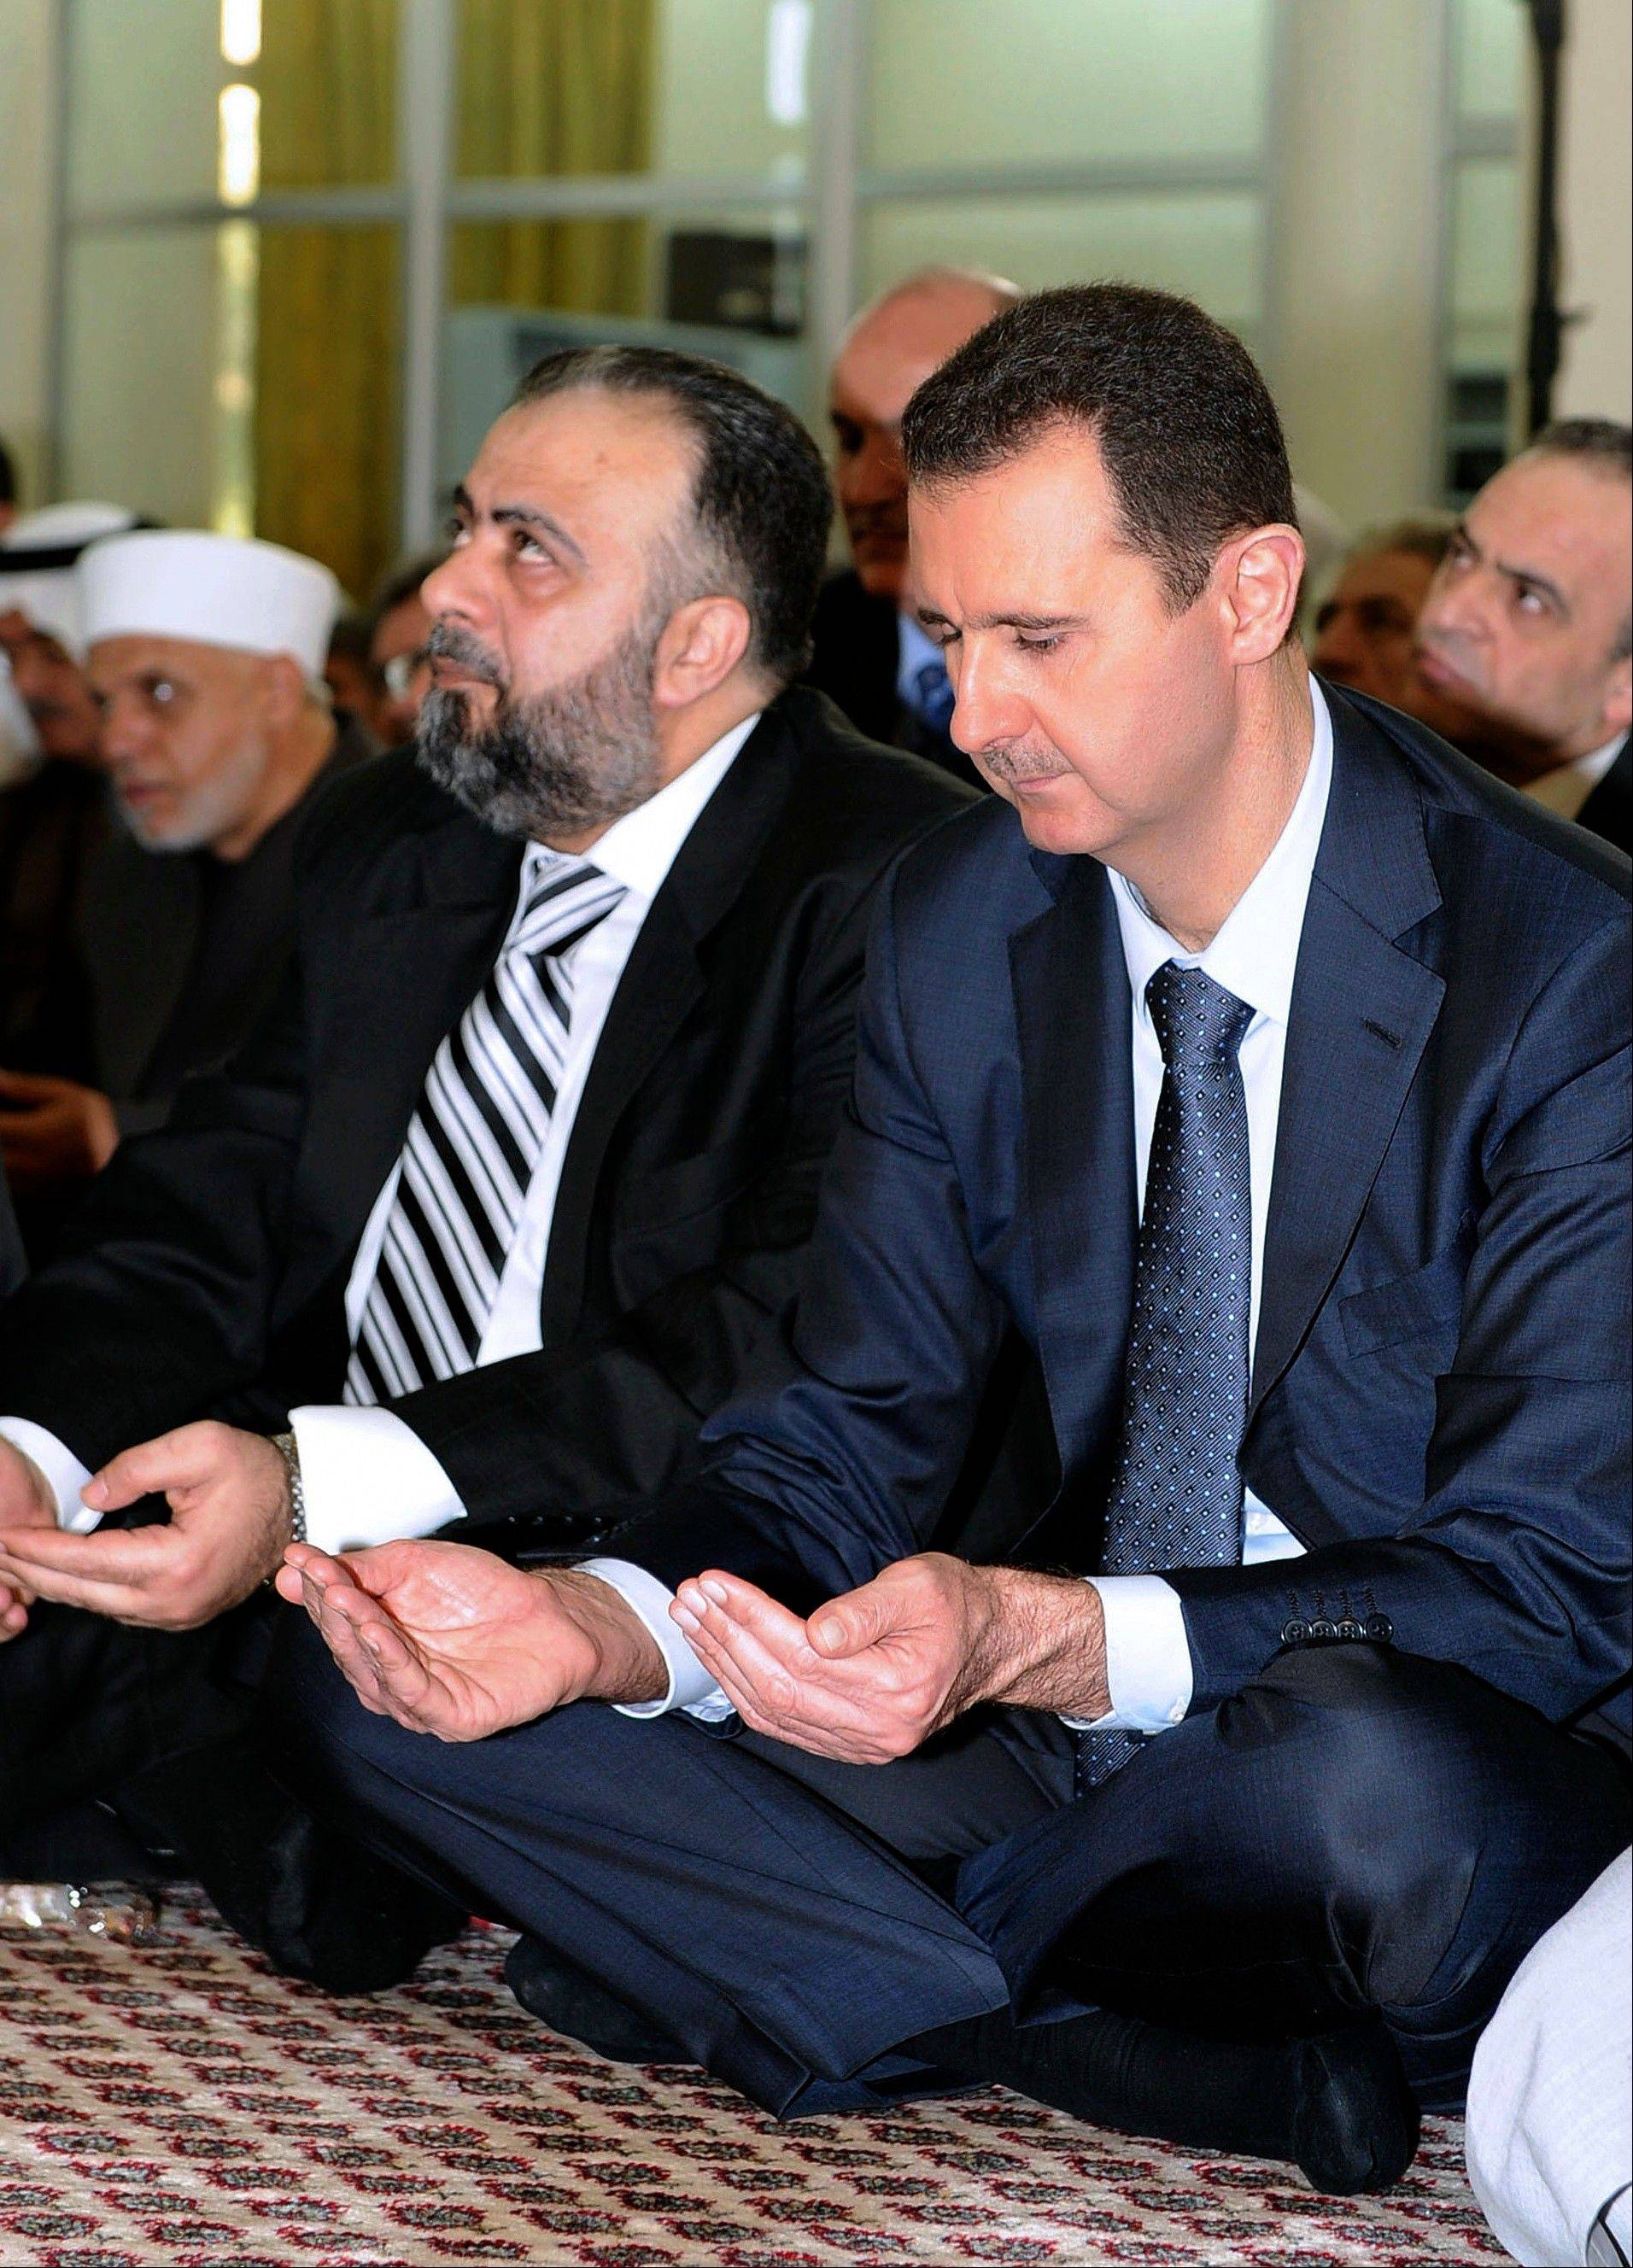 In this photo released by the Syrian official news agency SANA, Syrian president, Bashar Assad, performs Eid prayers in the Hamad Mosque in Damascus, Syria, Sunday. Eid al-Fitr is a three-day holiday marking the end of the holy month of Ramadan. The last time he appeared in public was July 4, when he gave a speech in parliament.